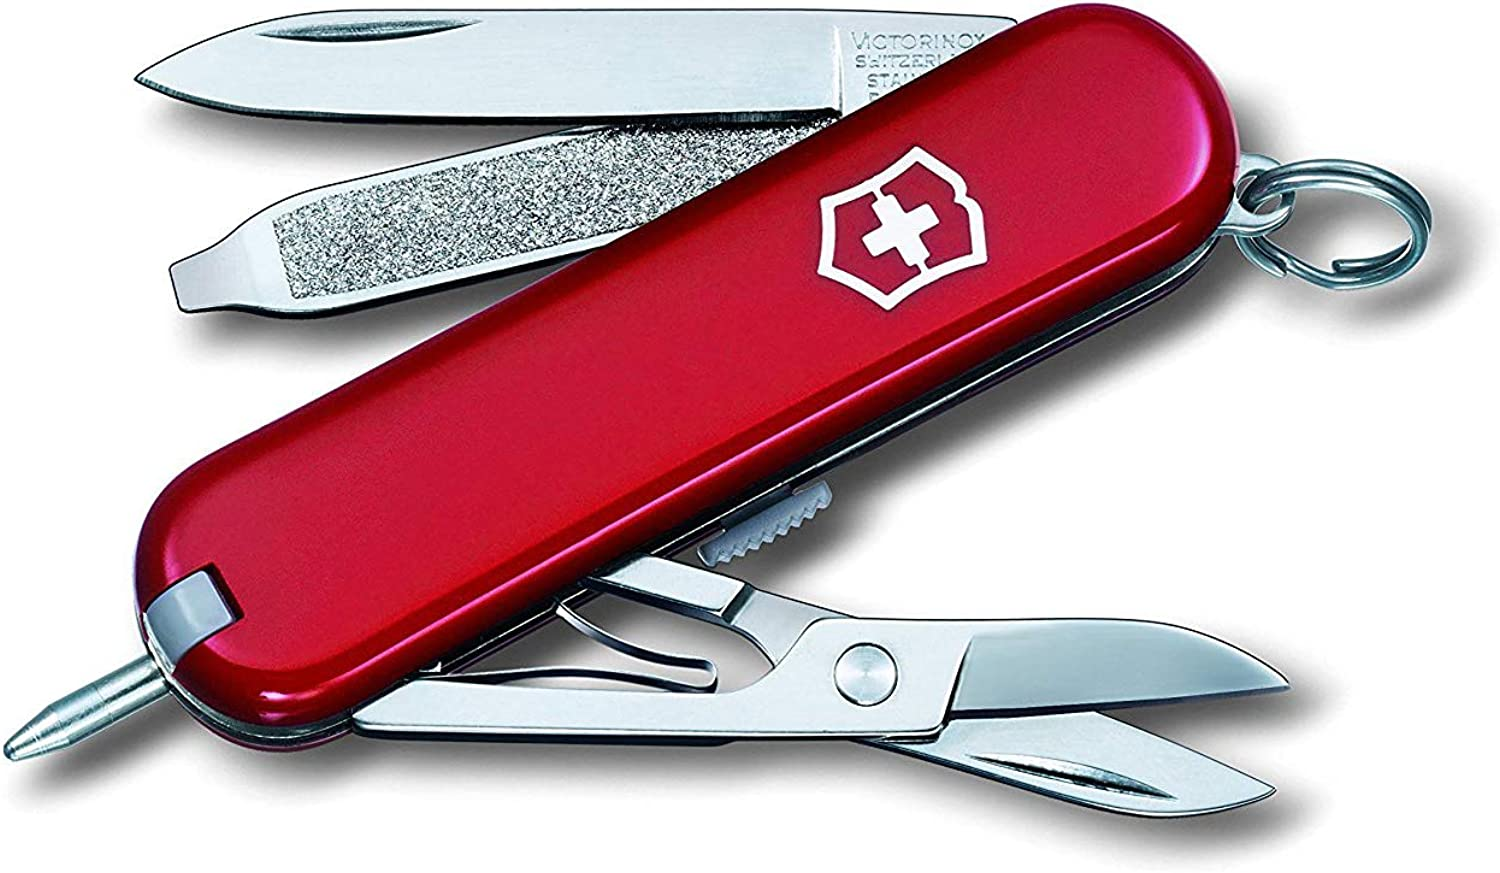 Victorinox Signature Swiss Army Knife Red Blister